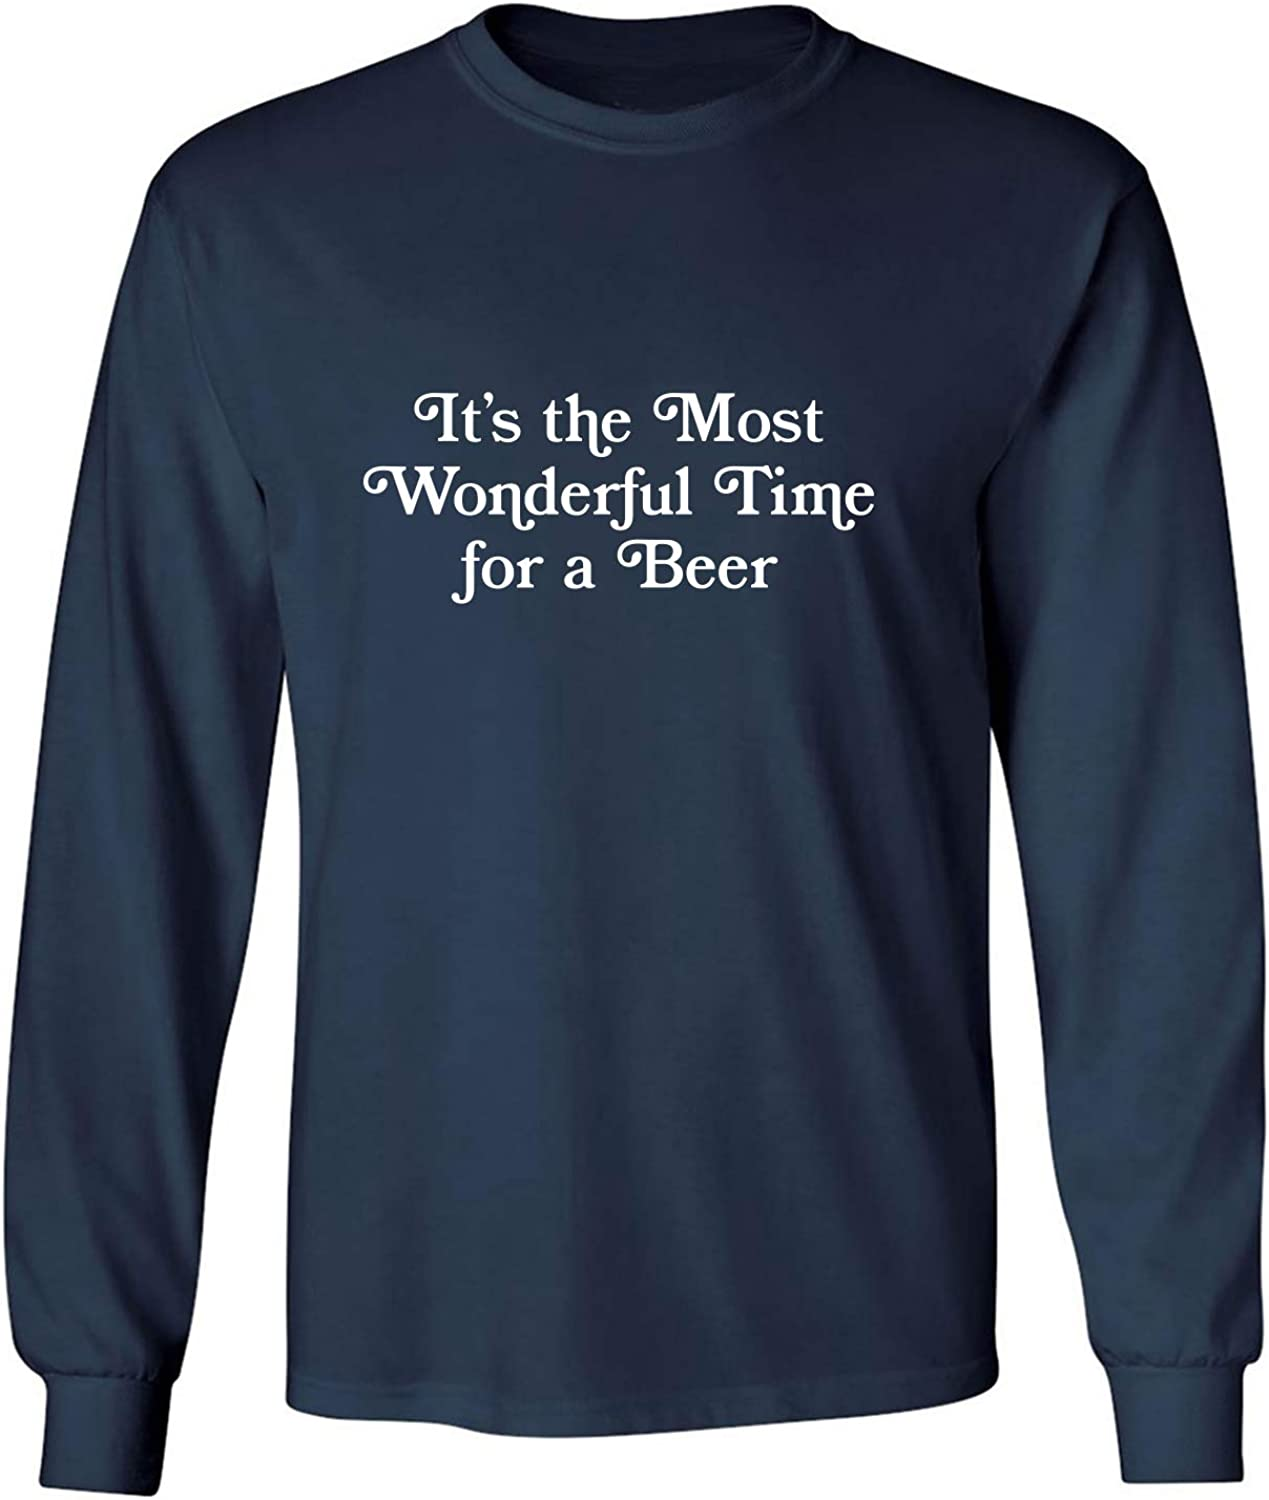 It's The Most Wonderful Time Adult Long Sleeve T-Shirt in Navy - XXXXX-Large